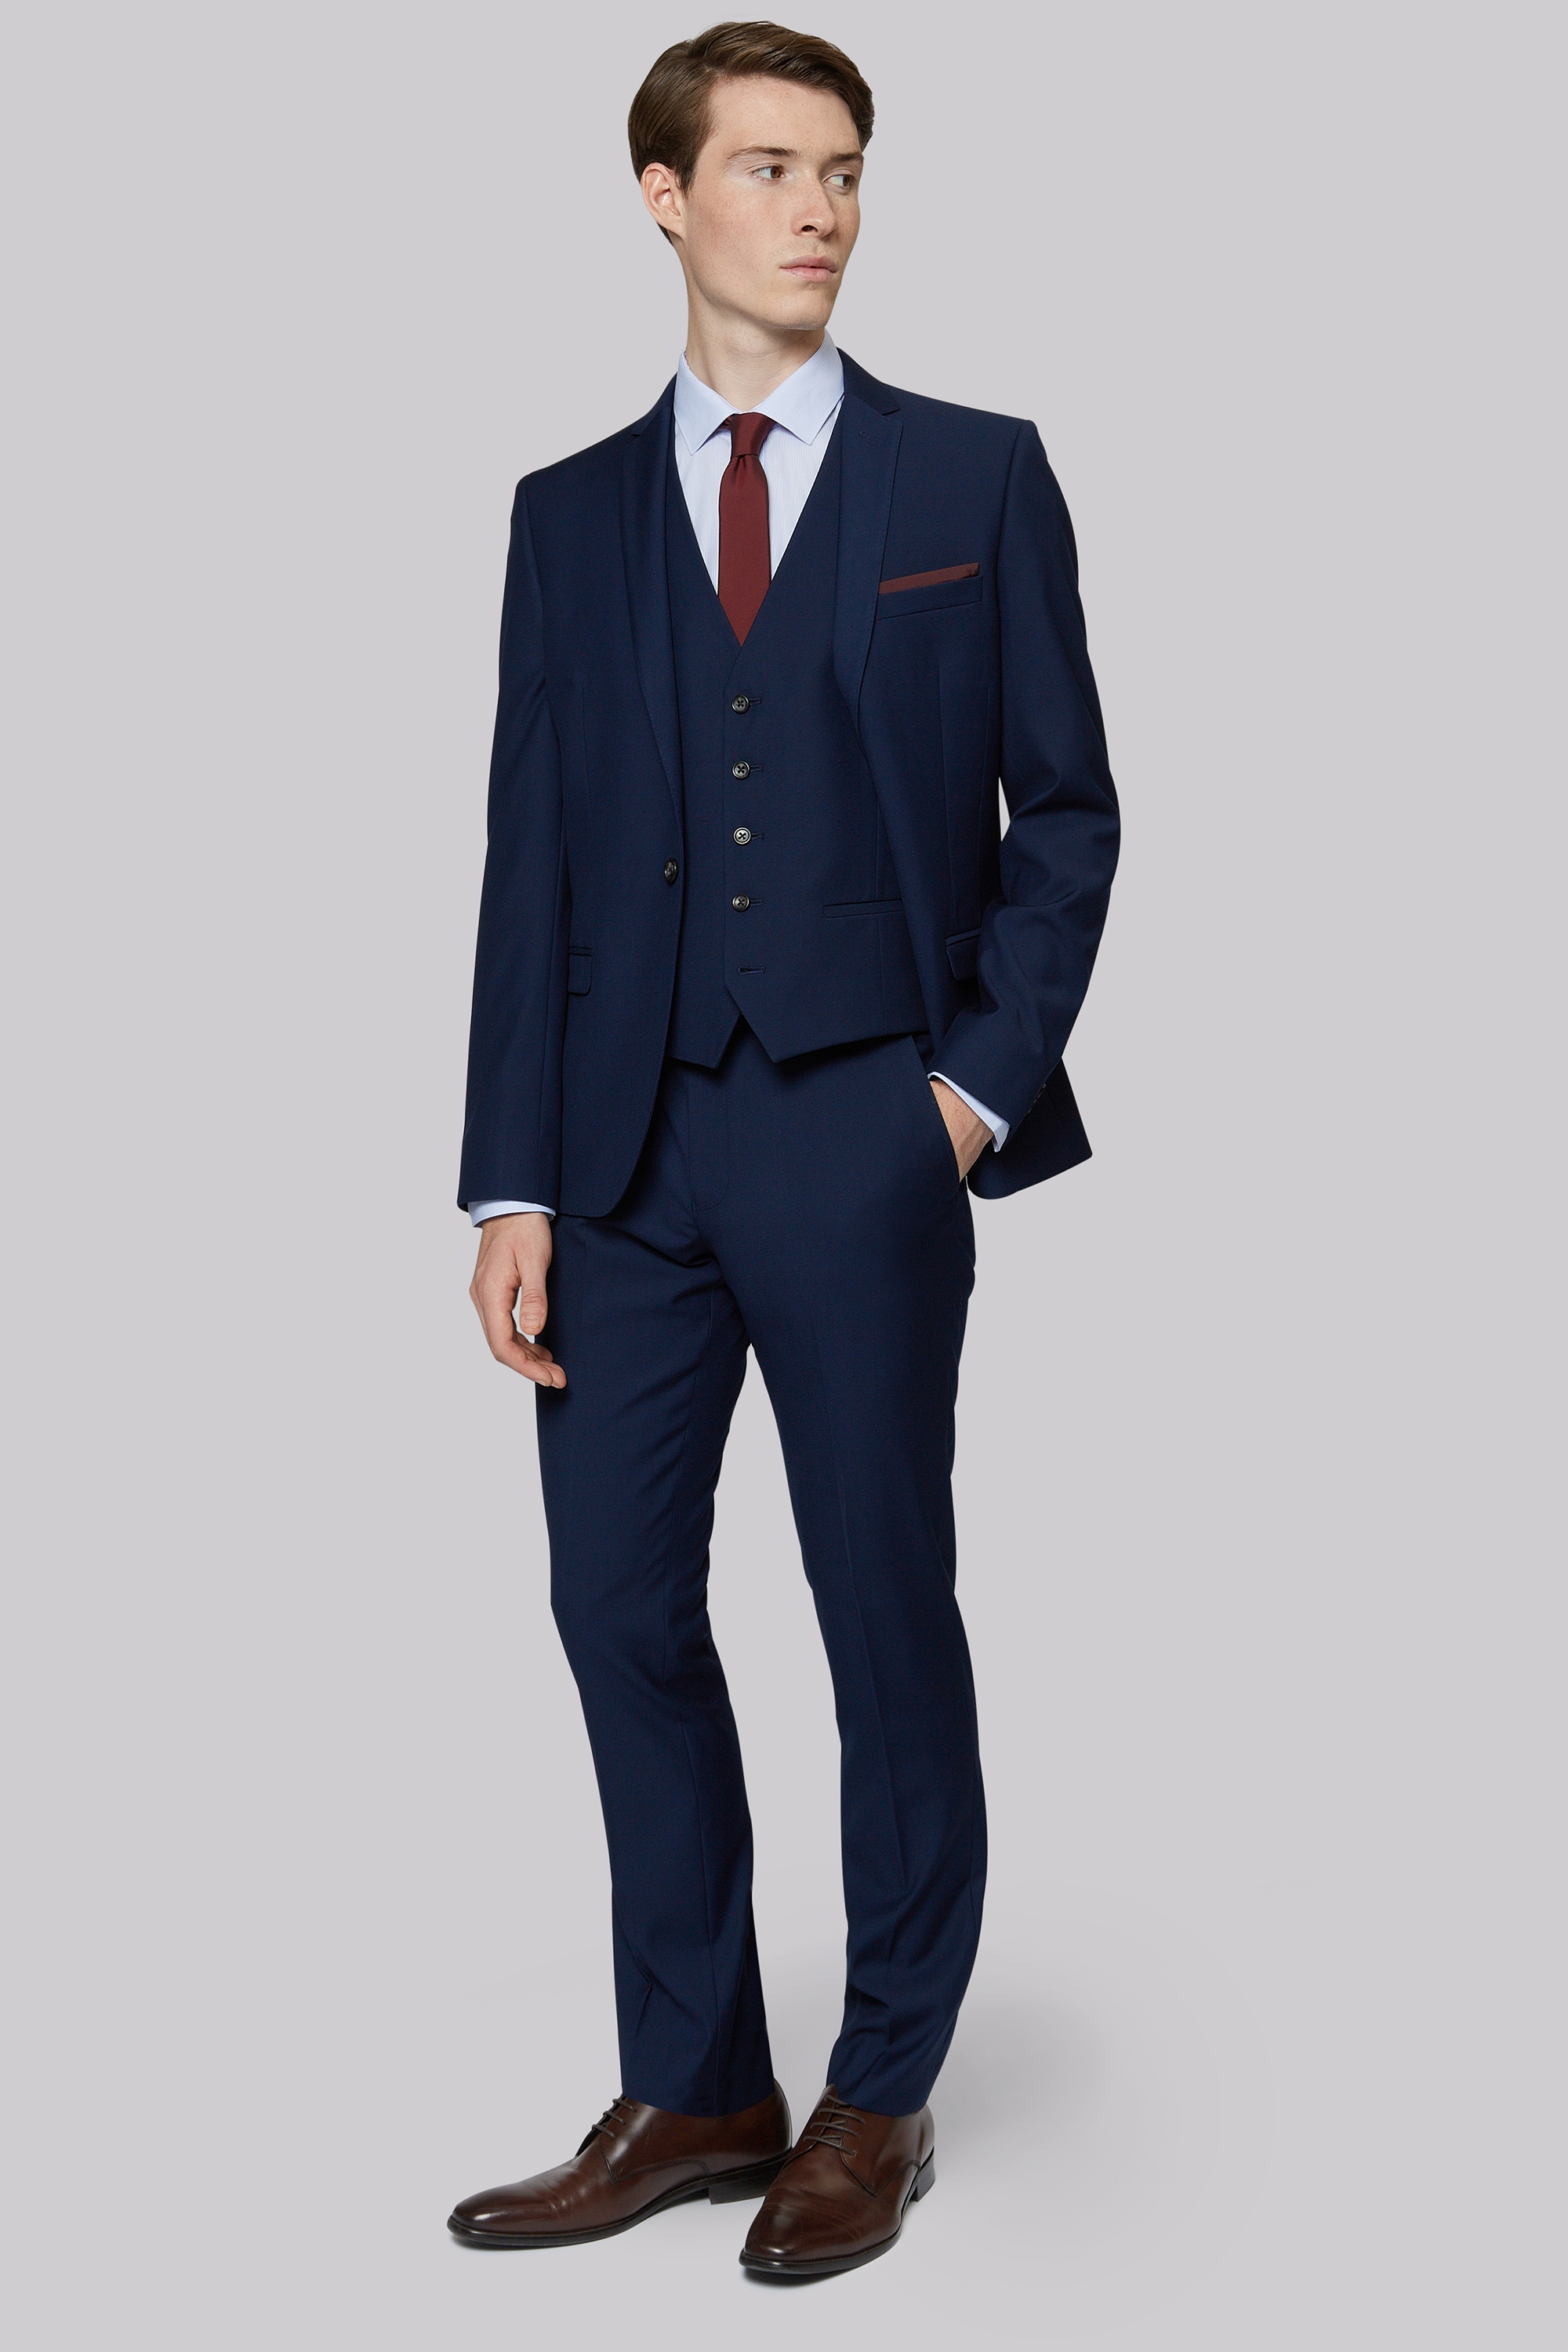 Men's Graduation Suits | Moss Bros